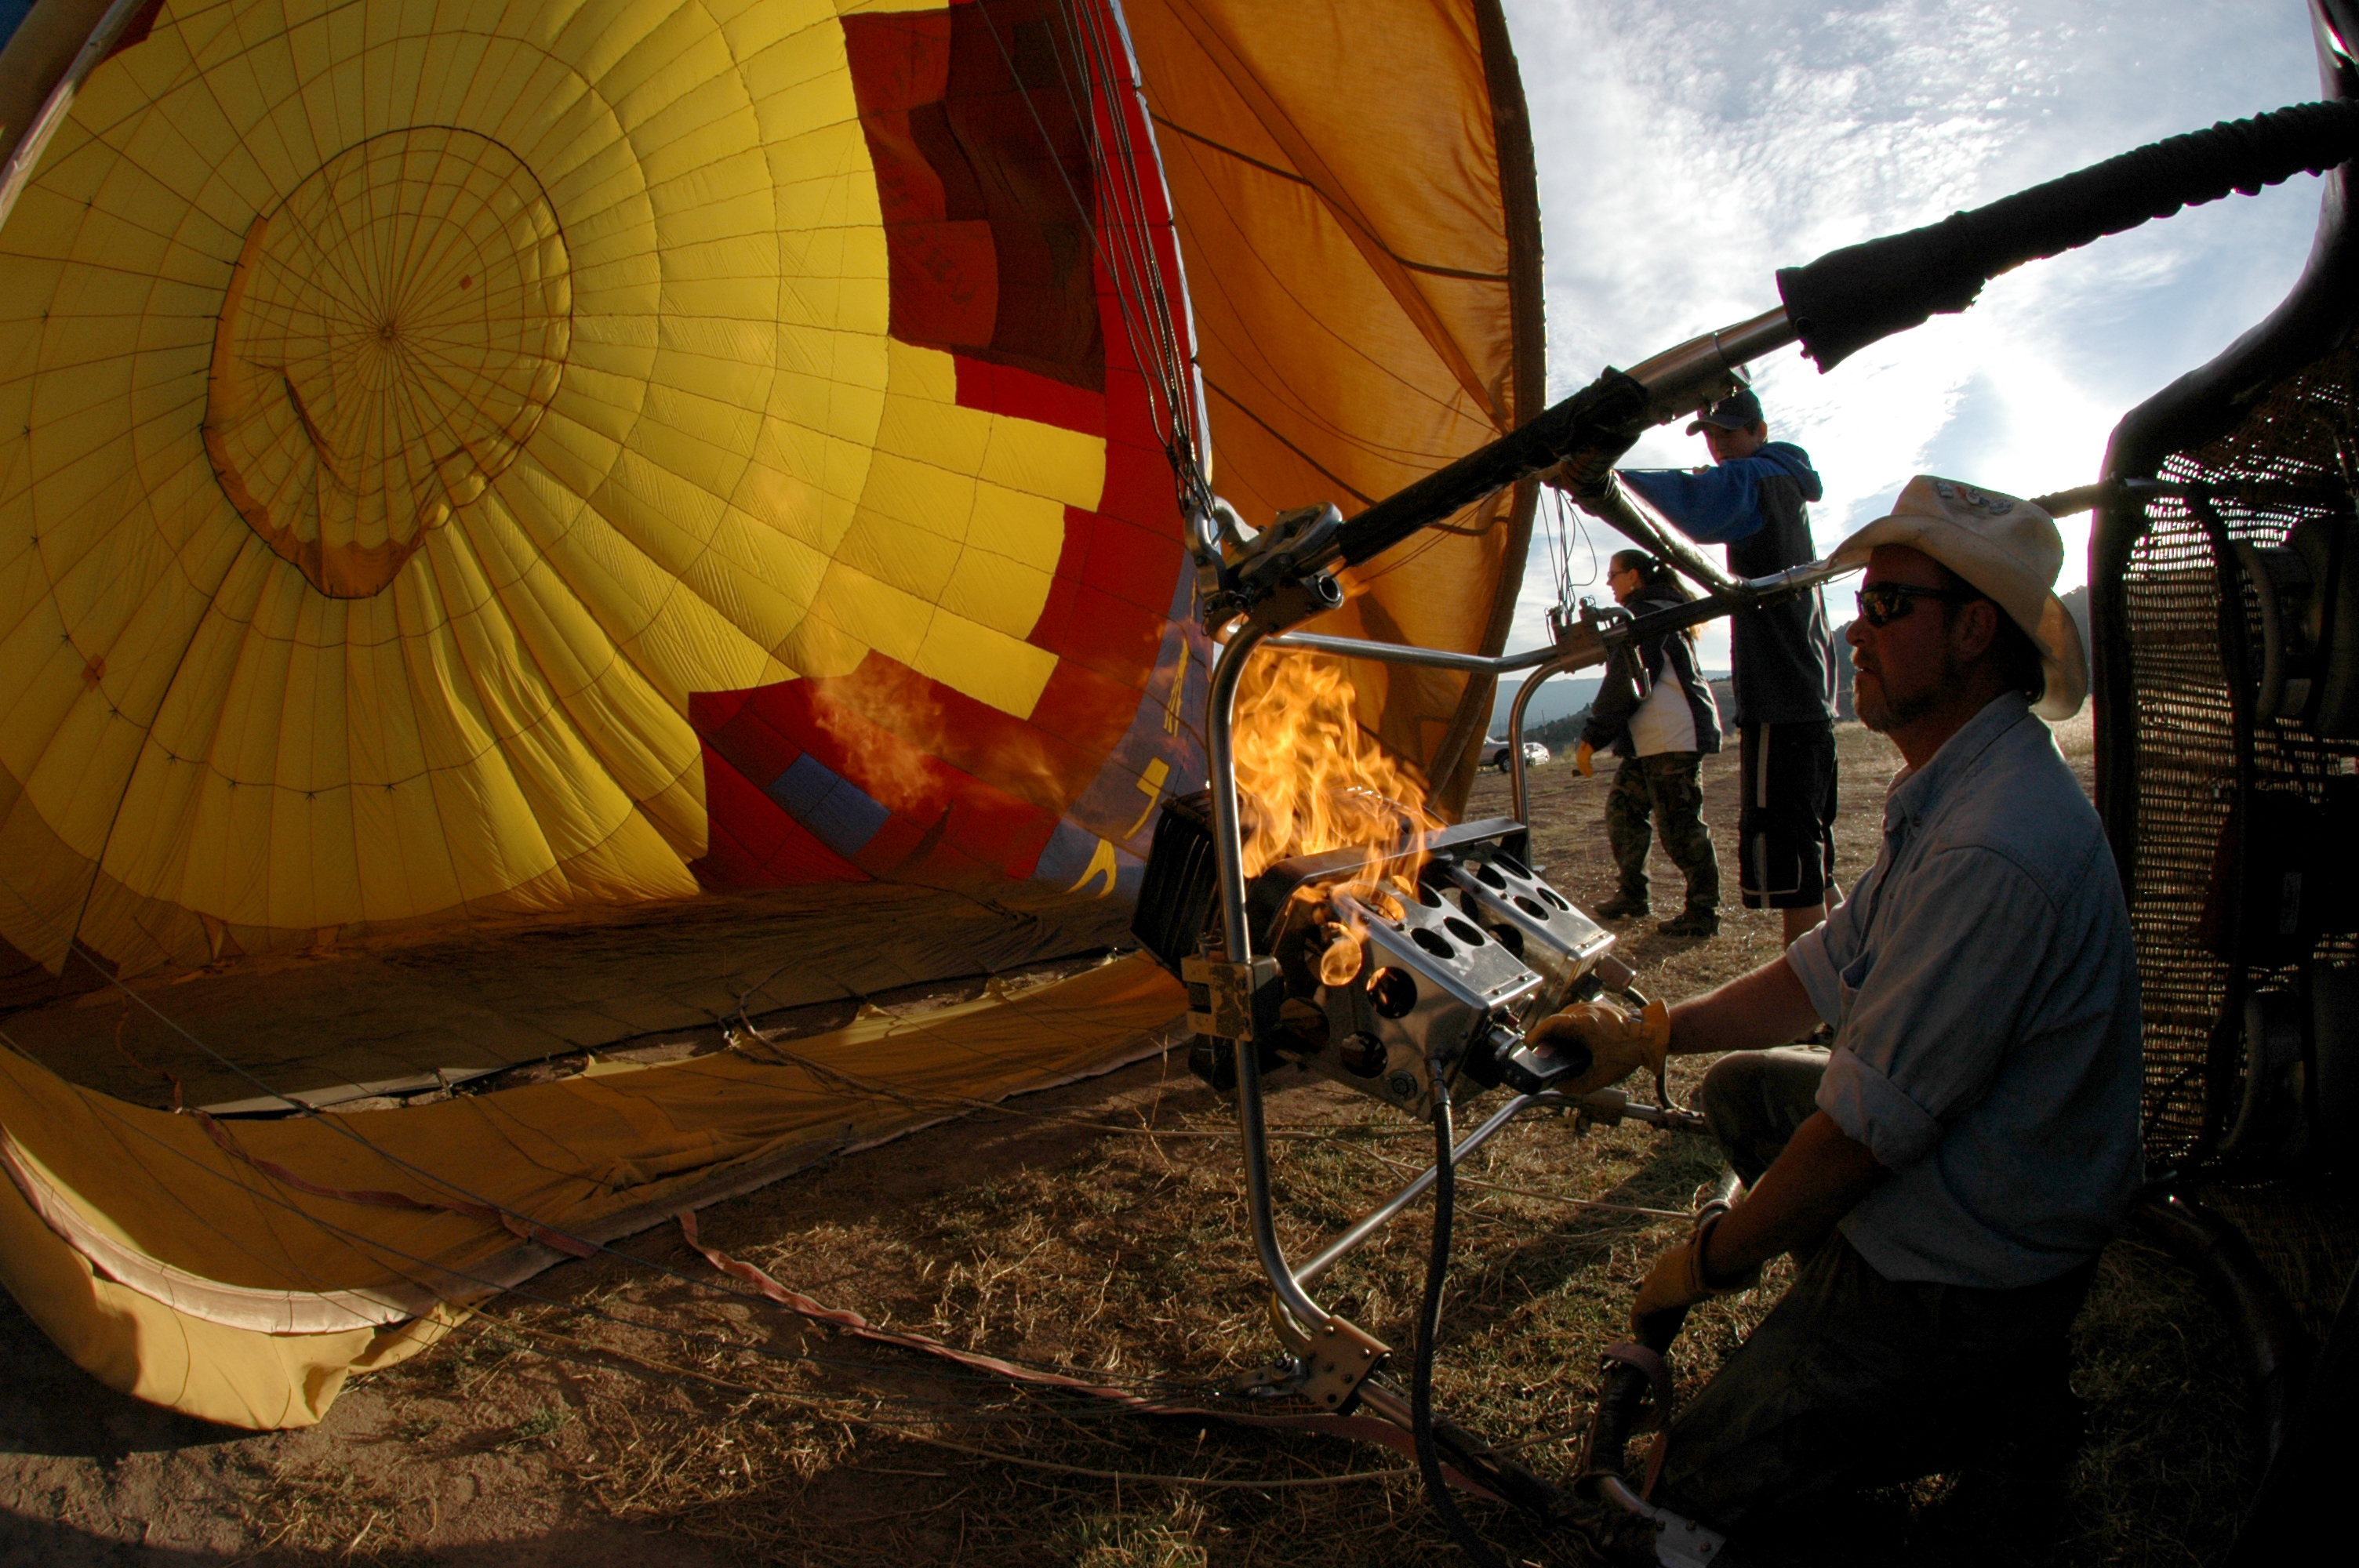 how to make a hot air balloon without fire